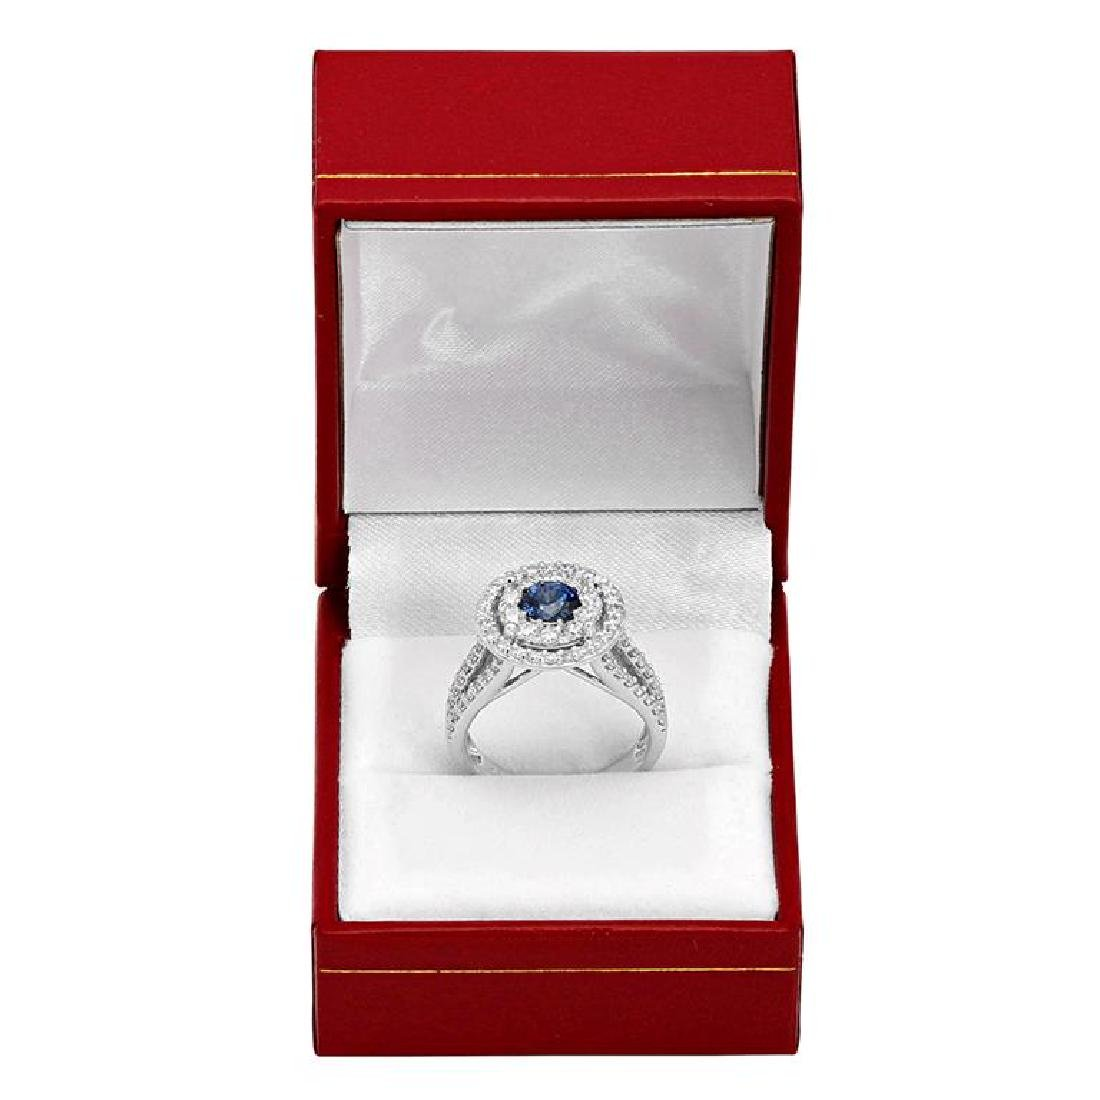 14k White Gold 0.99ct Sapphire 1.52ct Diamond Ring - 3